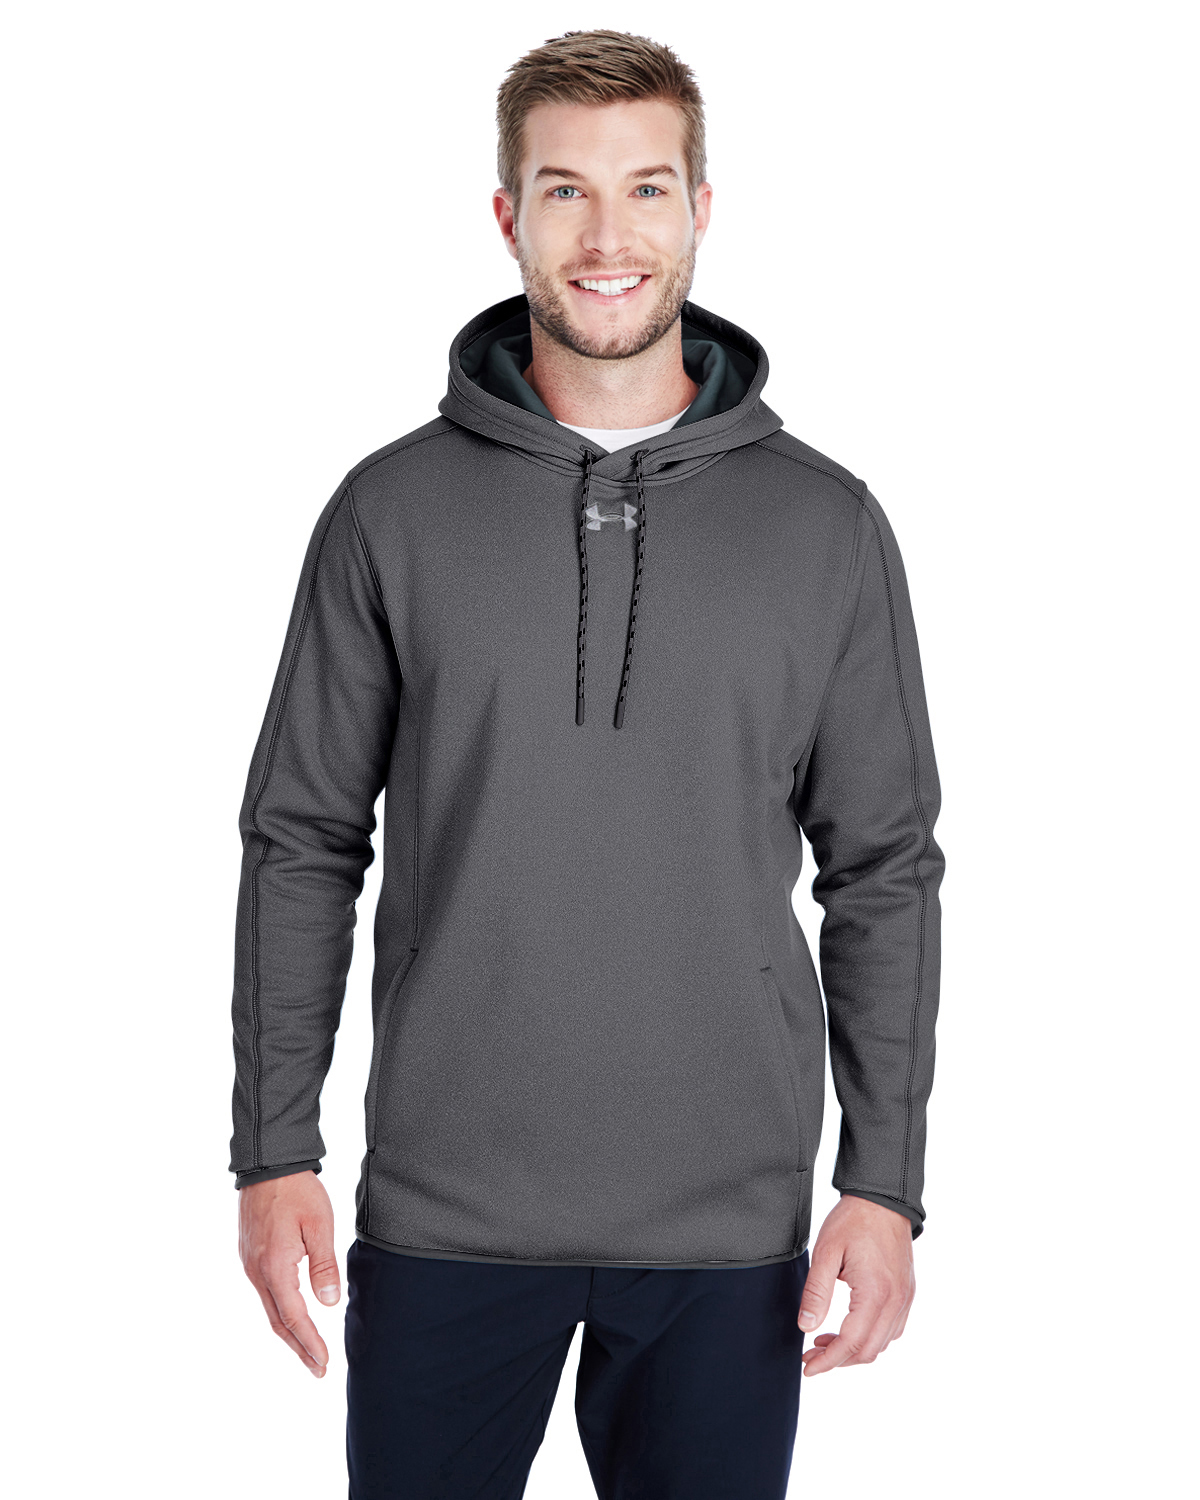 9d3e31d2f9b6 Double Threat Armour Fleece Under Armour Men s Hoodie - Xpromo.ca